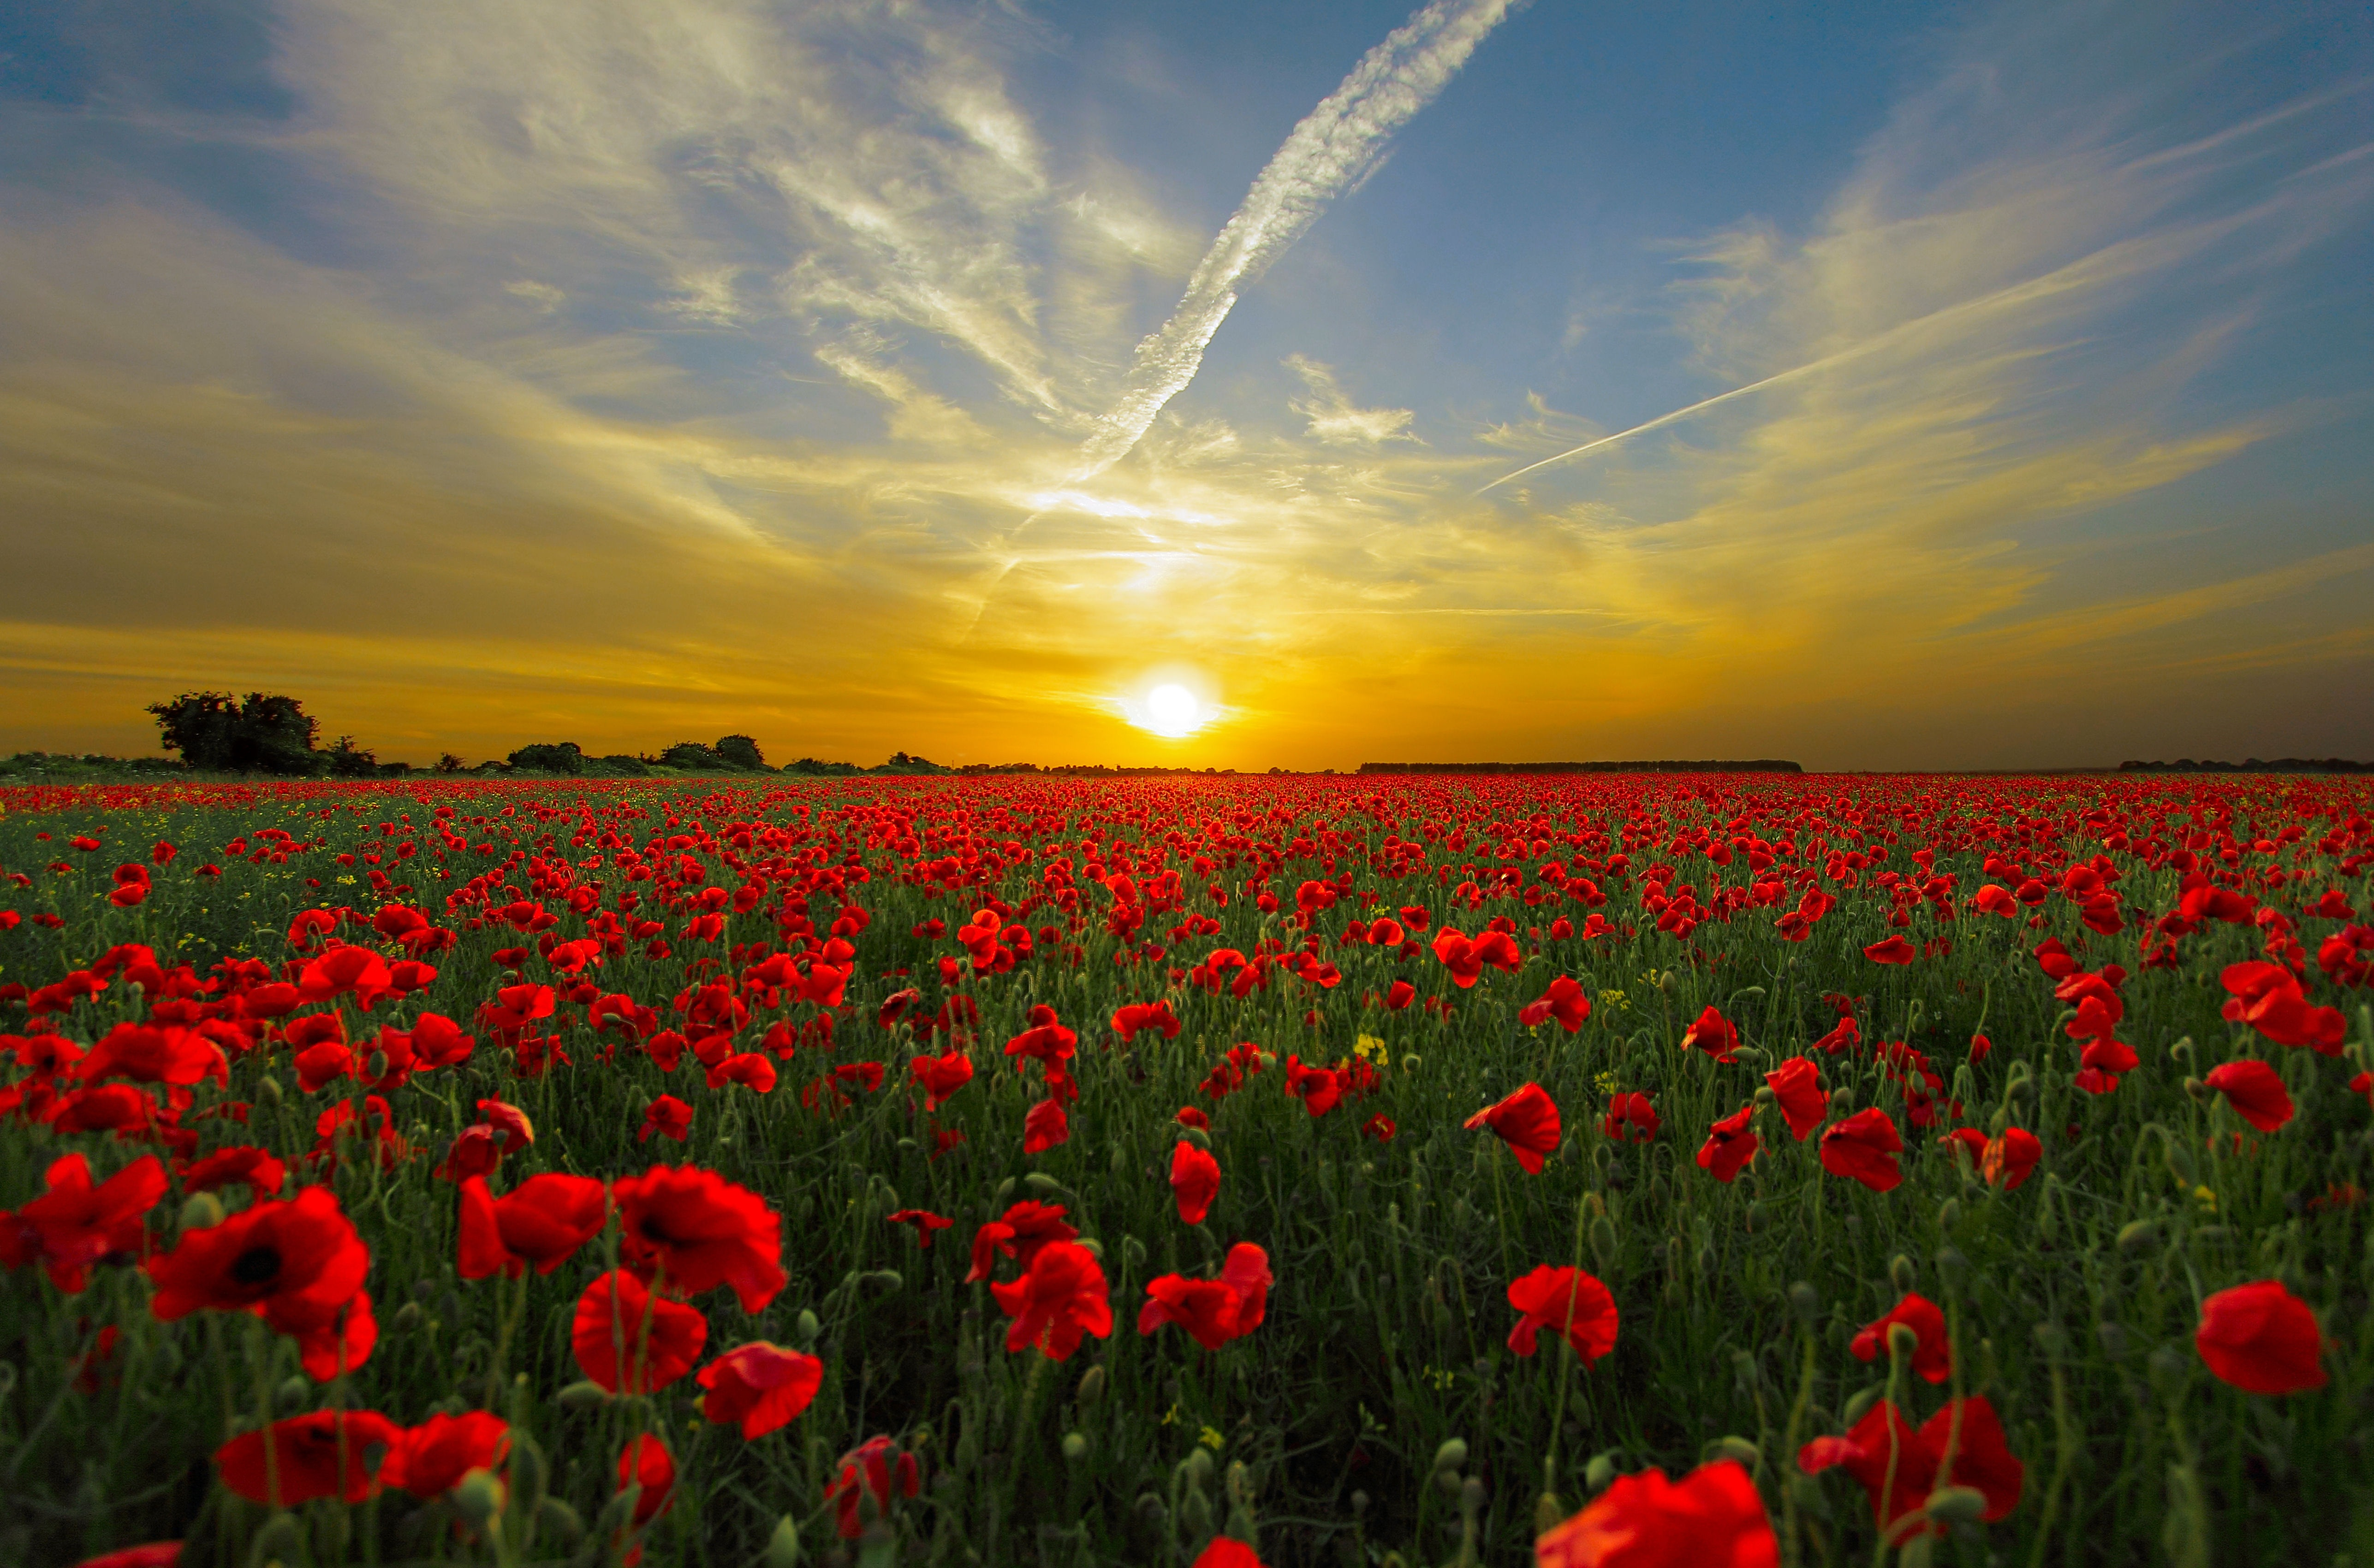 Poppy flower field at night royalty free stock photography image - Red Cluster Petal Flower Field During Sunset